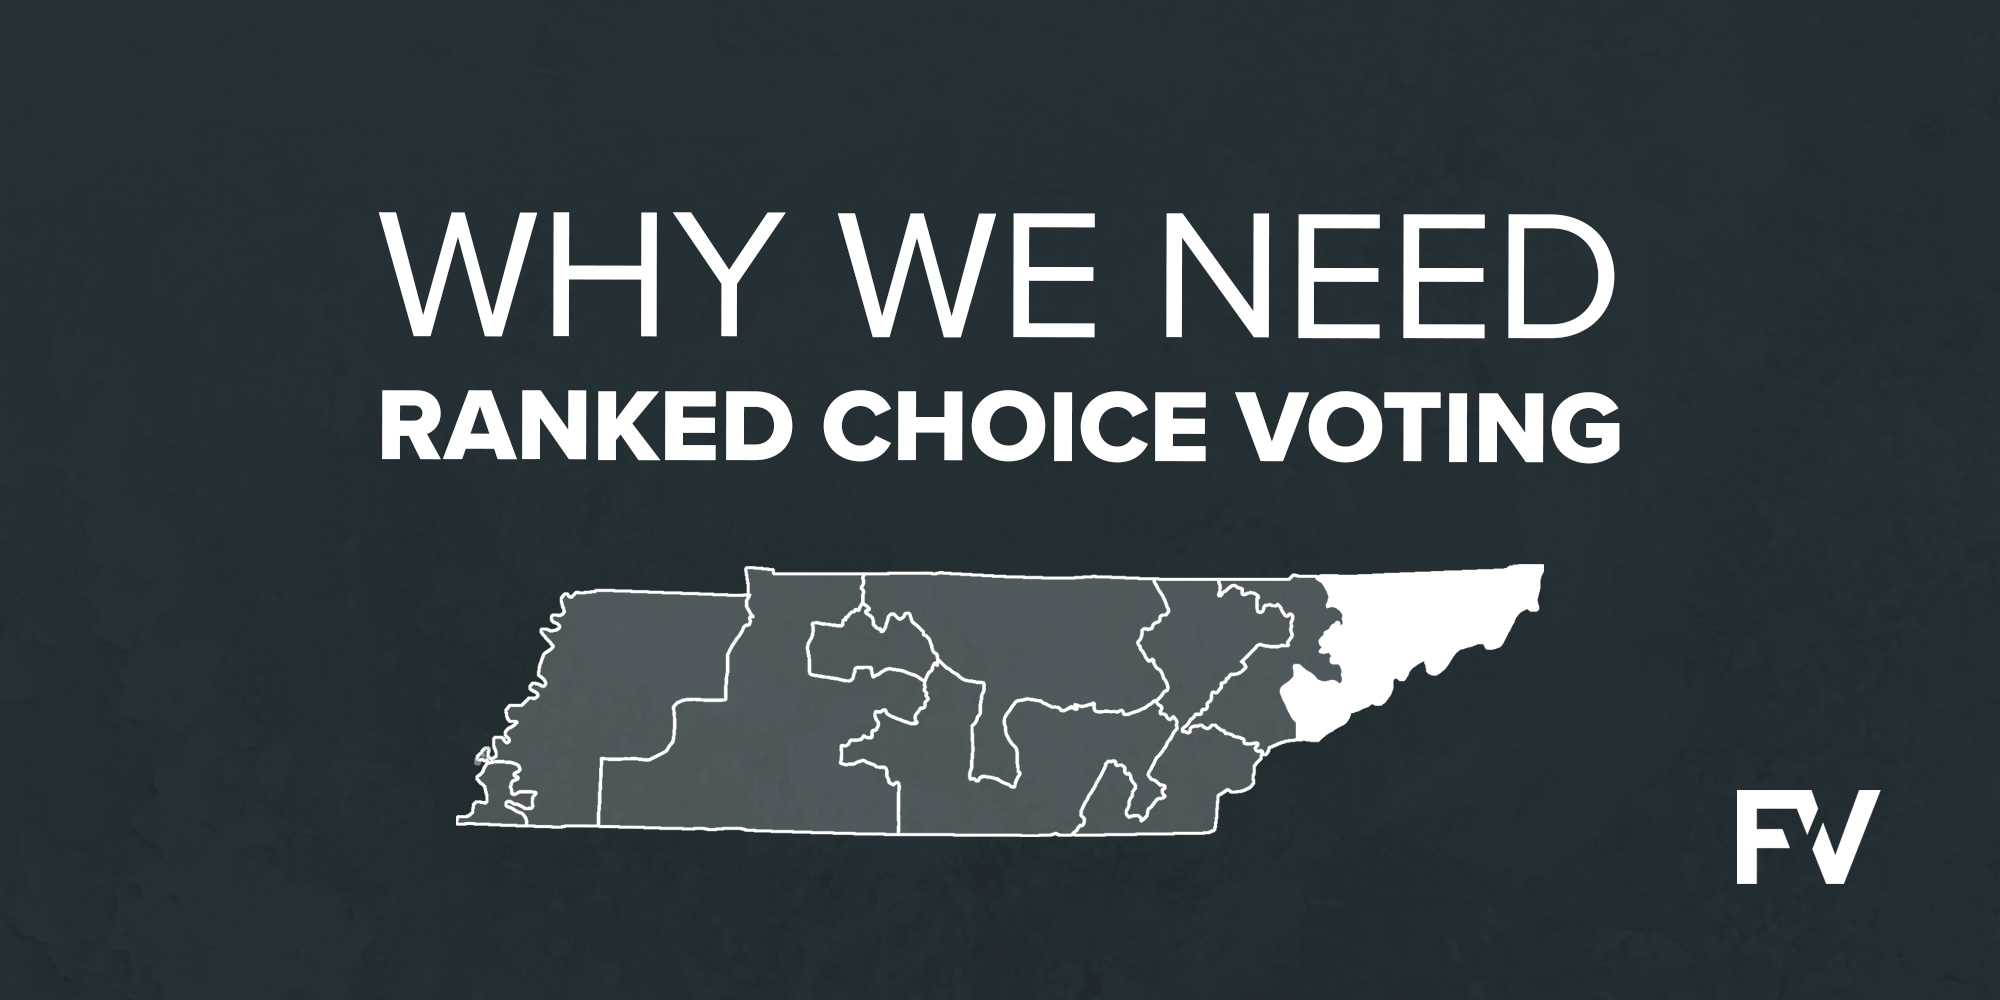 More than 80 Percent of Republicans Did Not Vote for the Winner of Tennessee's CD-1 Primary. That's Why We Need Ranked Choice Voting.